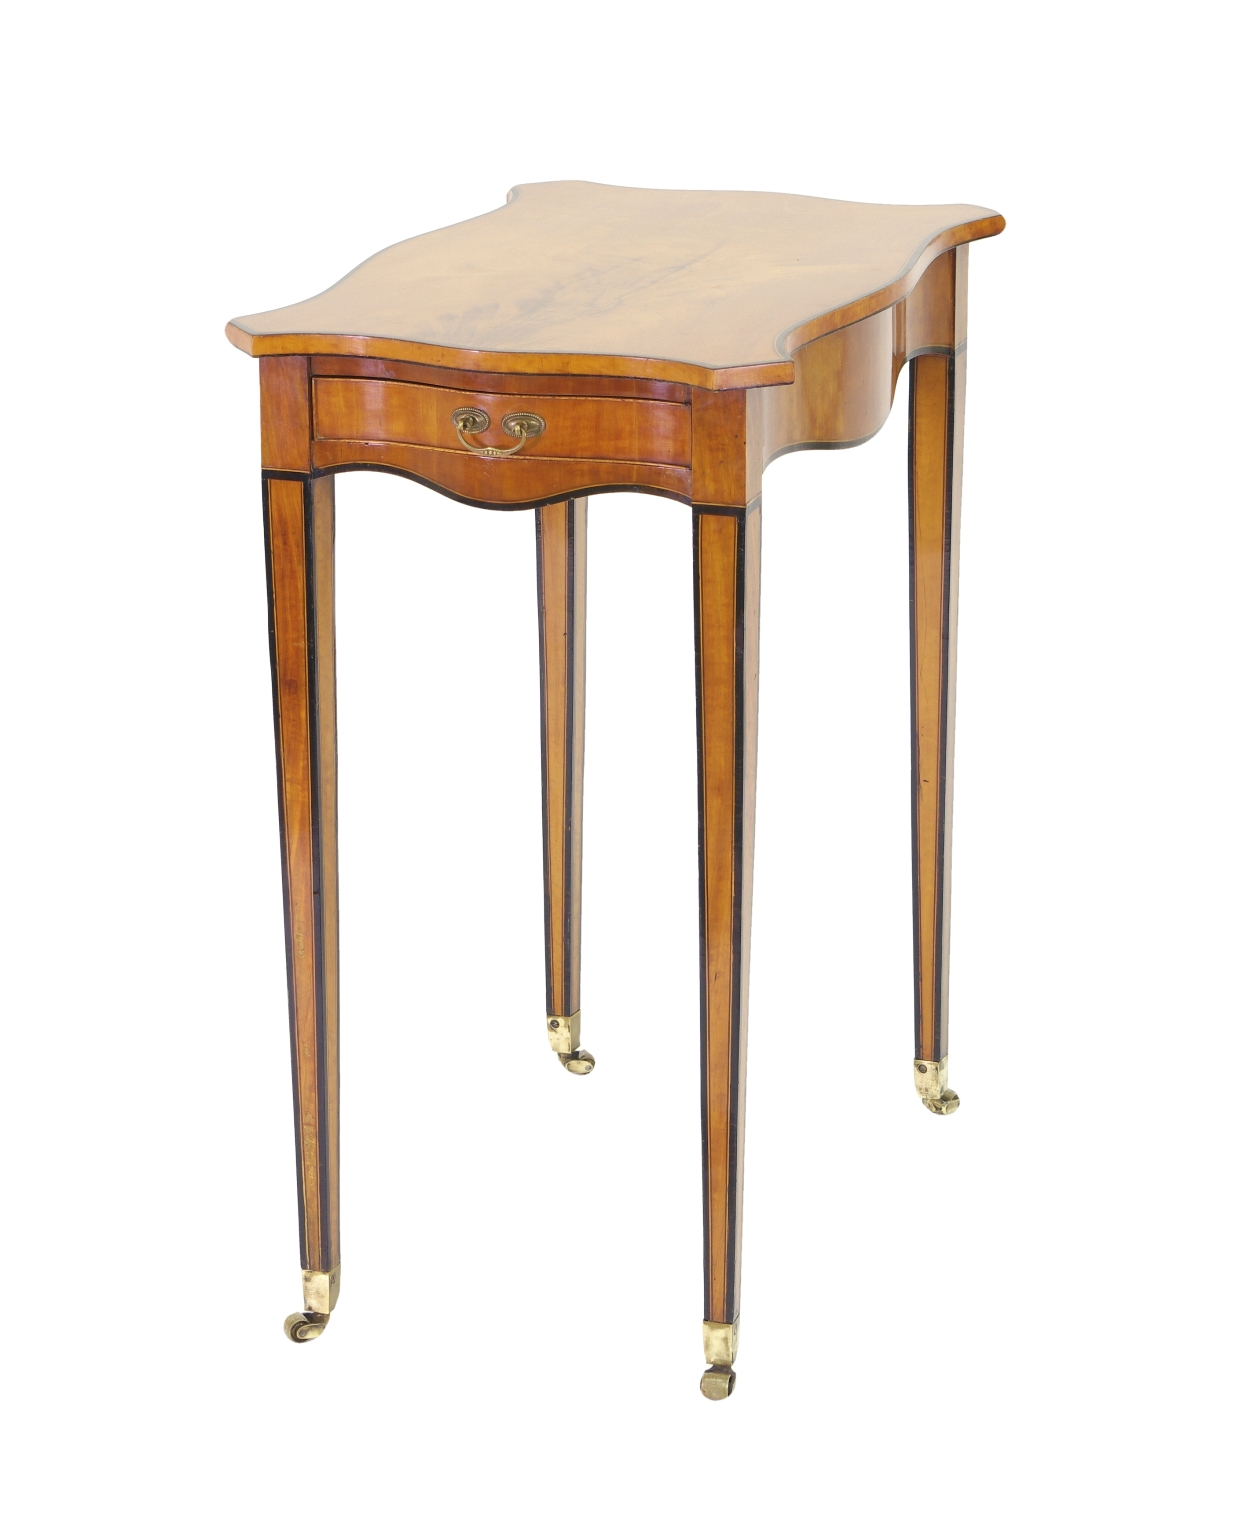 George III Satinwood Side Table, c. 1790